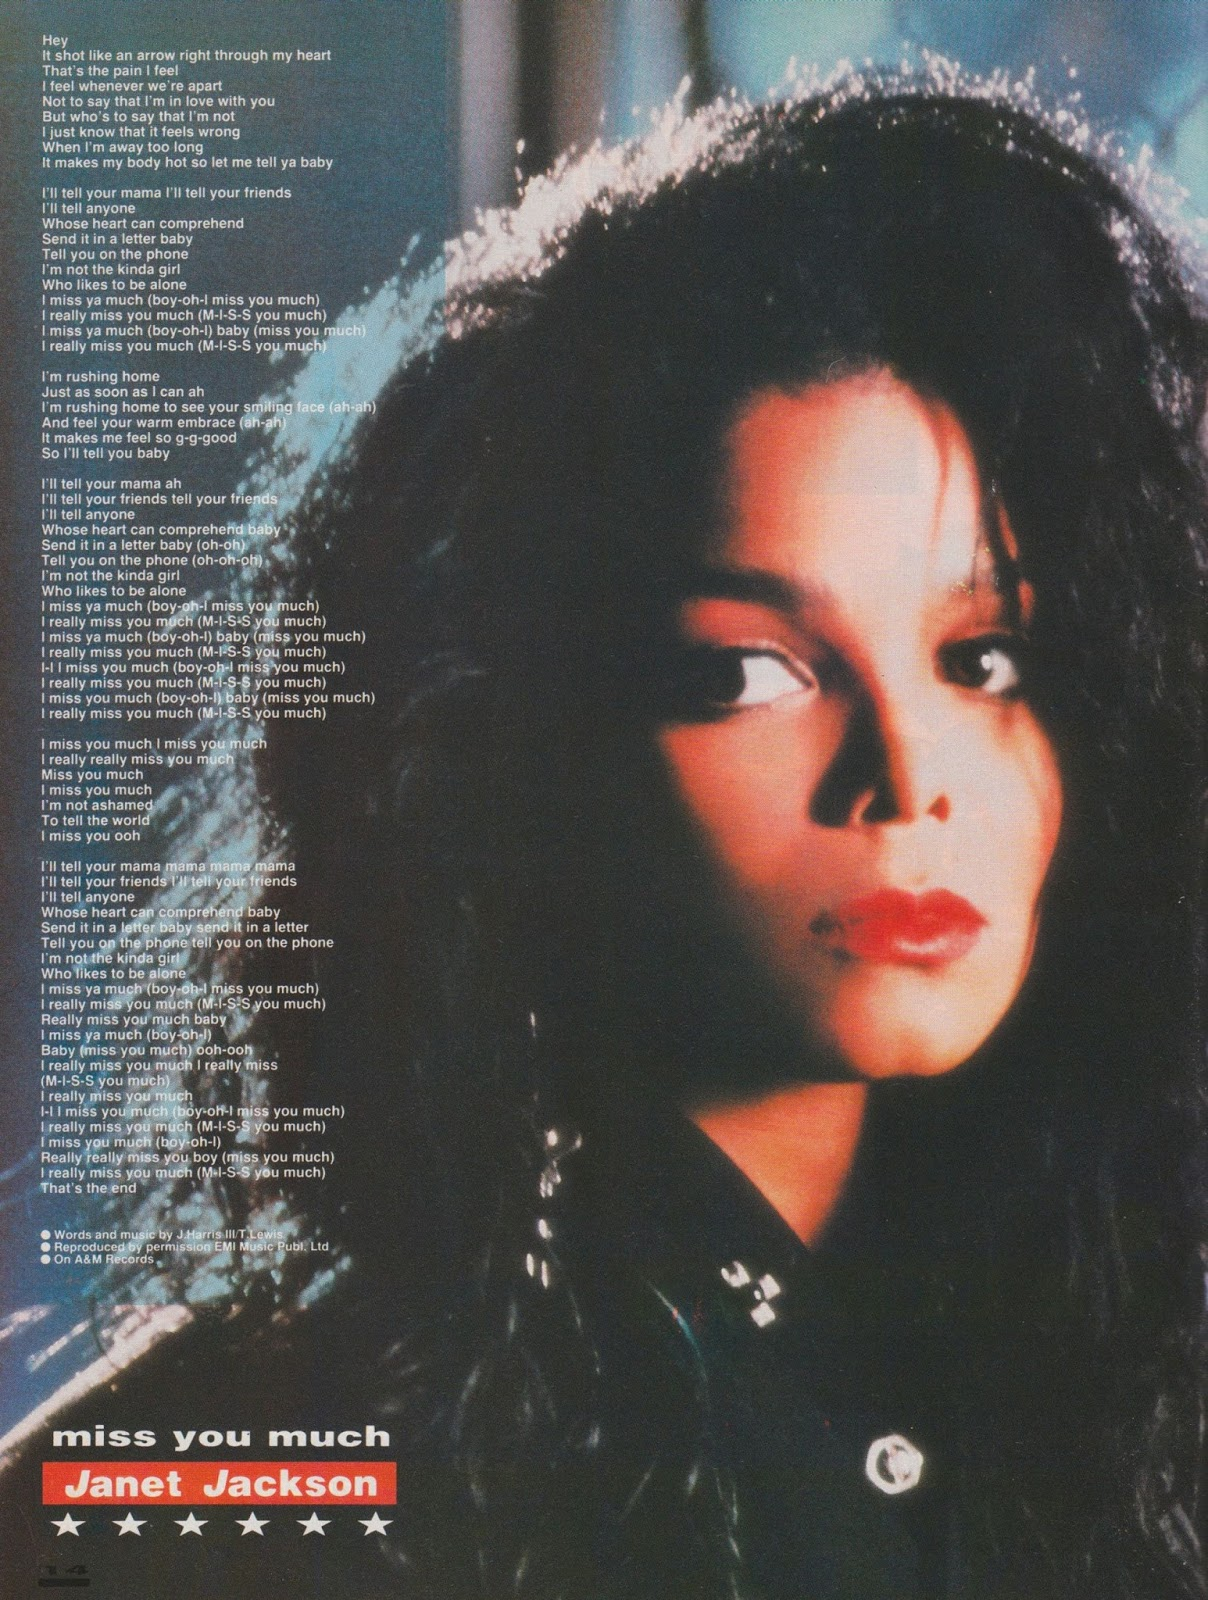 Top Of The Pops 80s: Janet Jackson - Miss You Musch - 1989